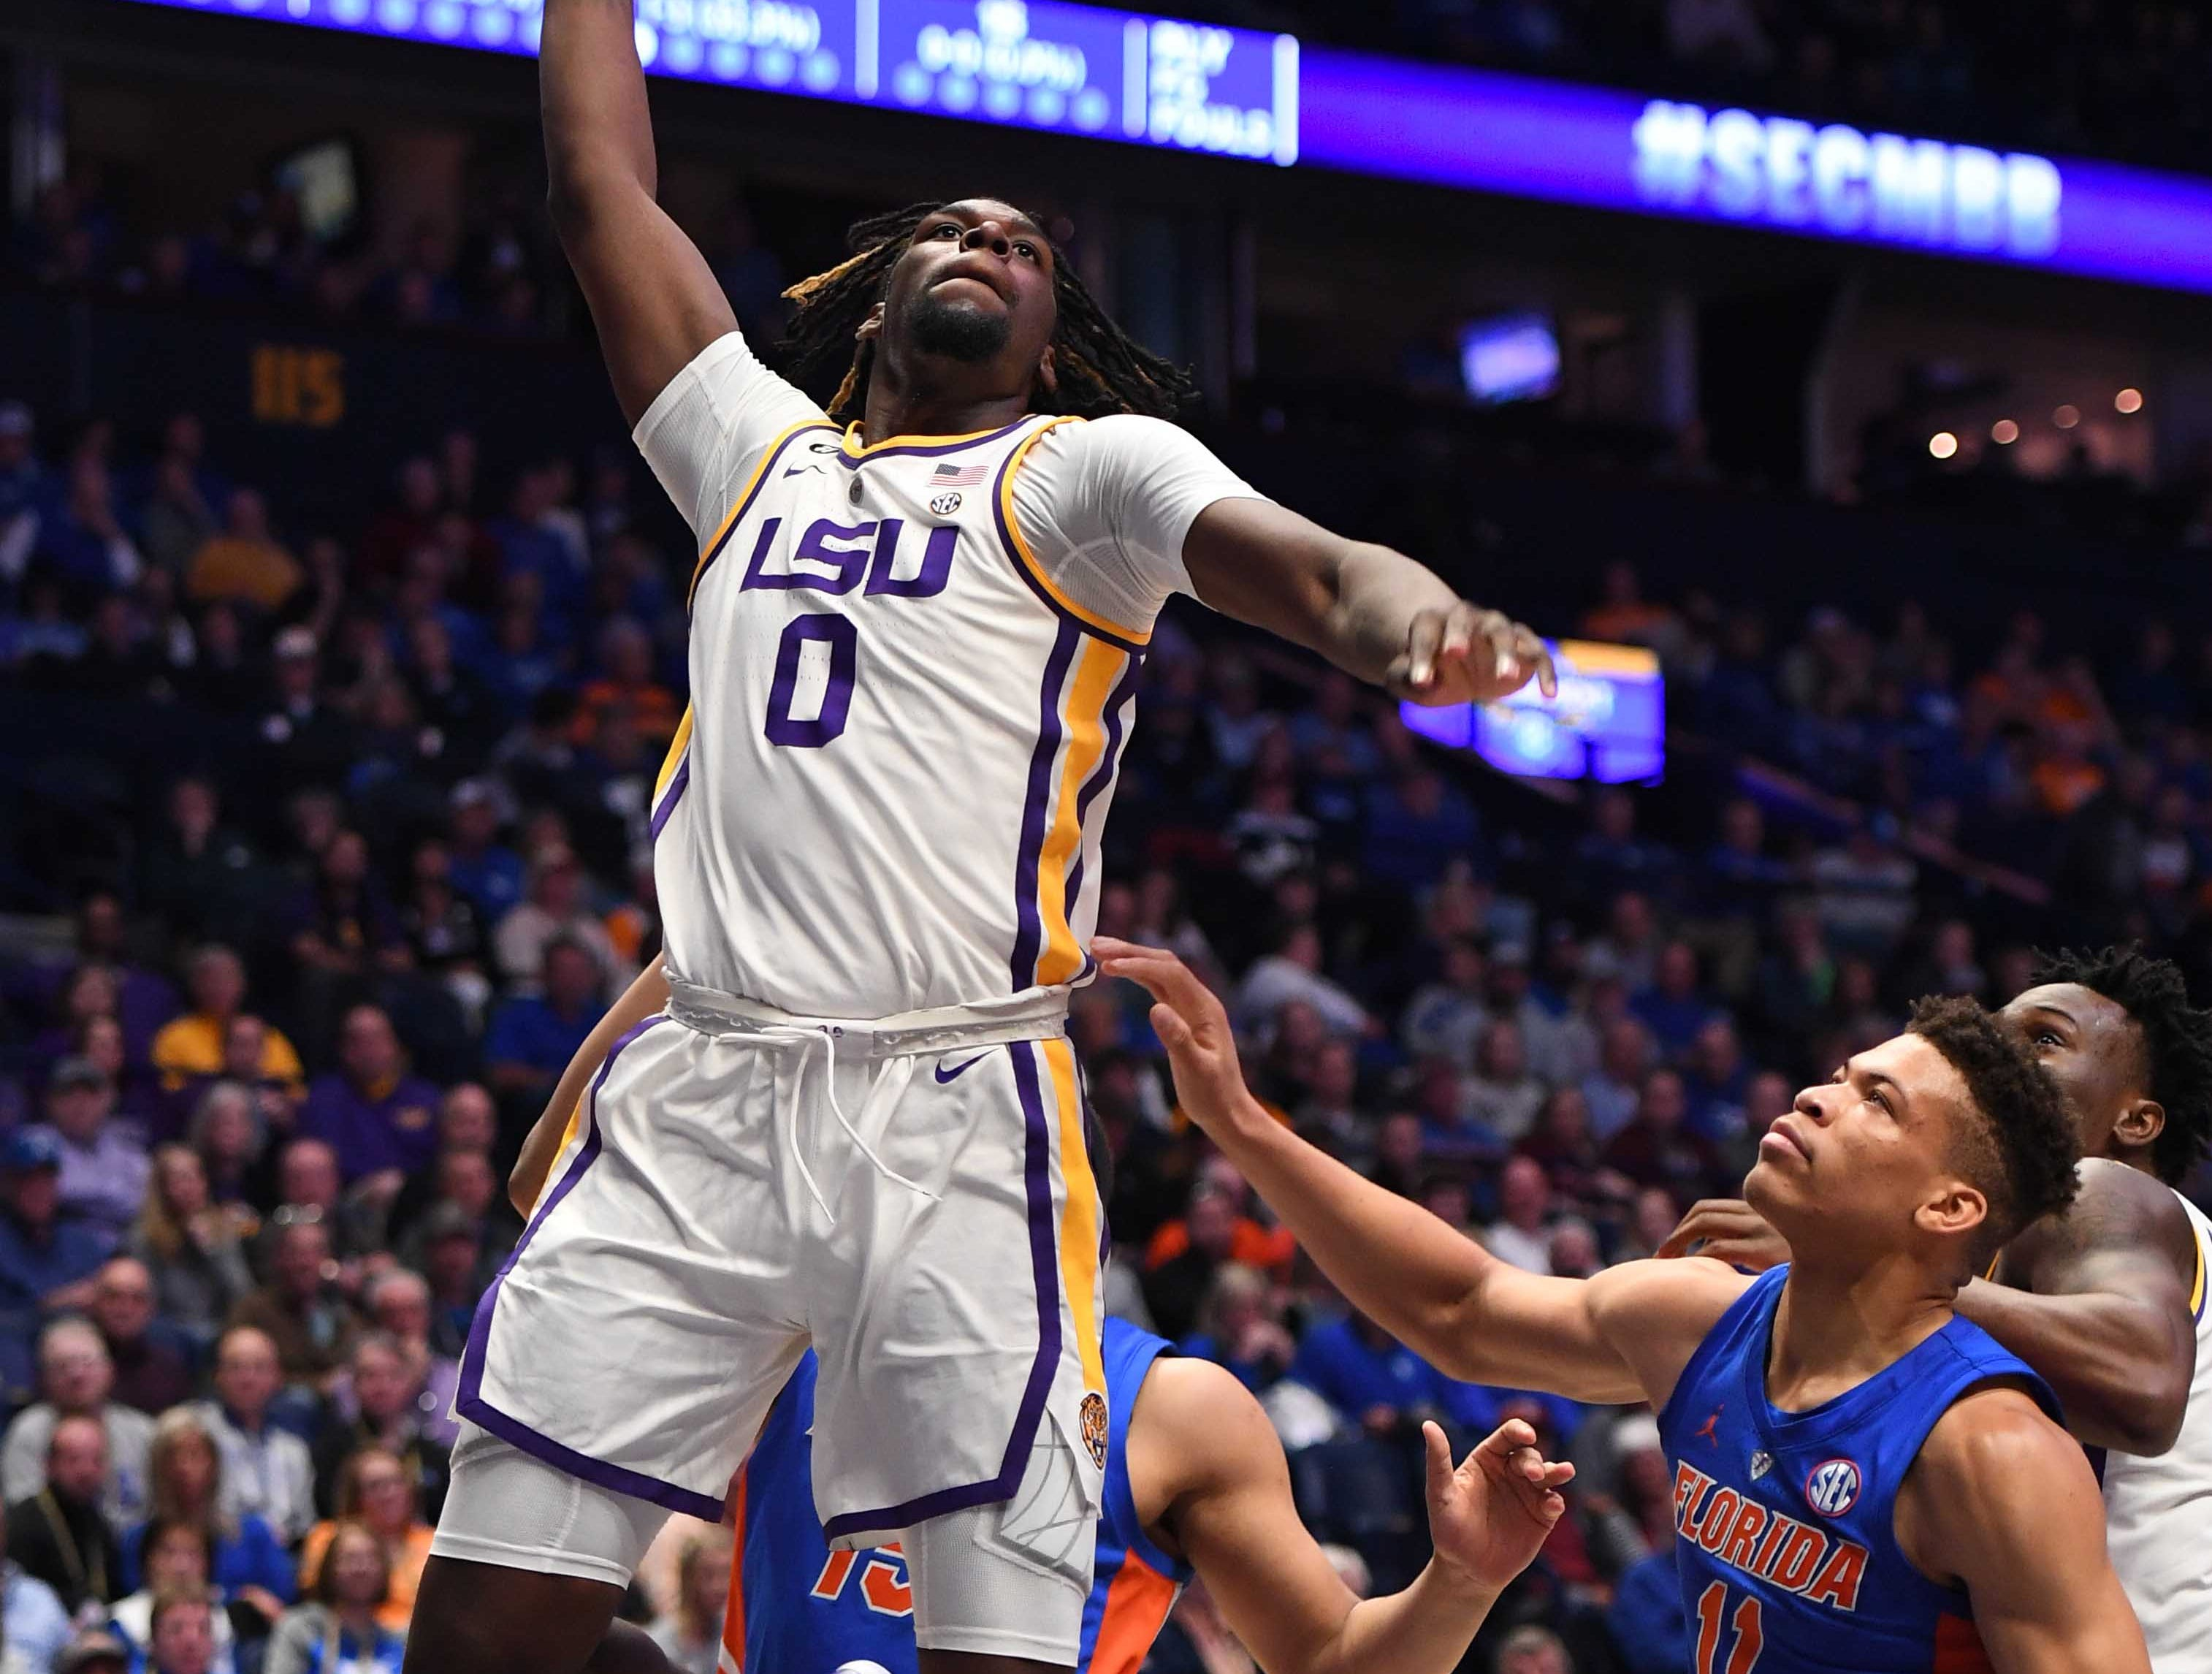 Mar 15, 2019; Nashville, TN, USA; LSU Tigers forward Naz Reid (0) dunks the ball against the Florida Gators during the first half of the SEC conference tournament at Bridgestone Arena. Mandatory Credit: Christopher Hanewinckel-USA TODAY Sports